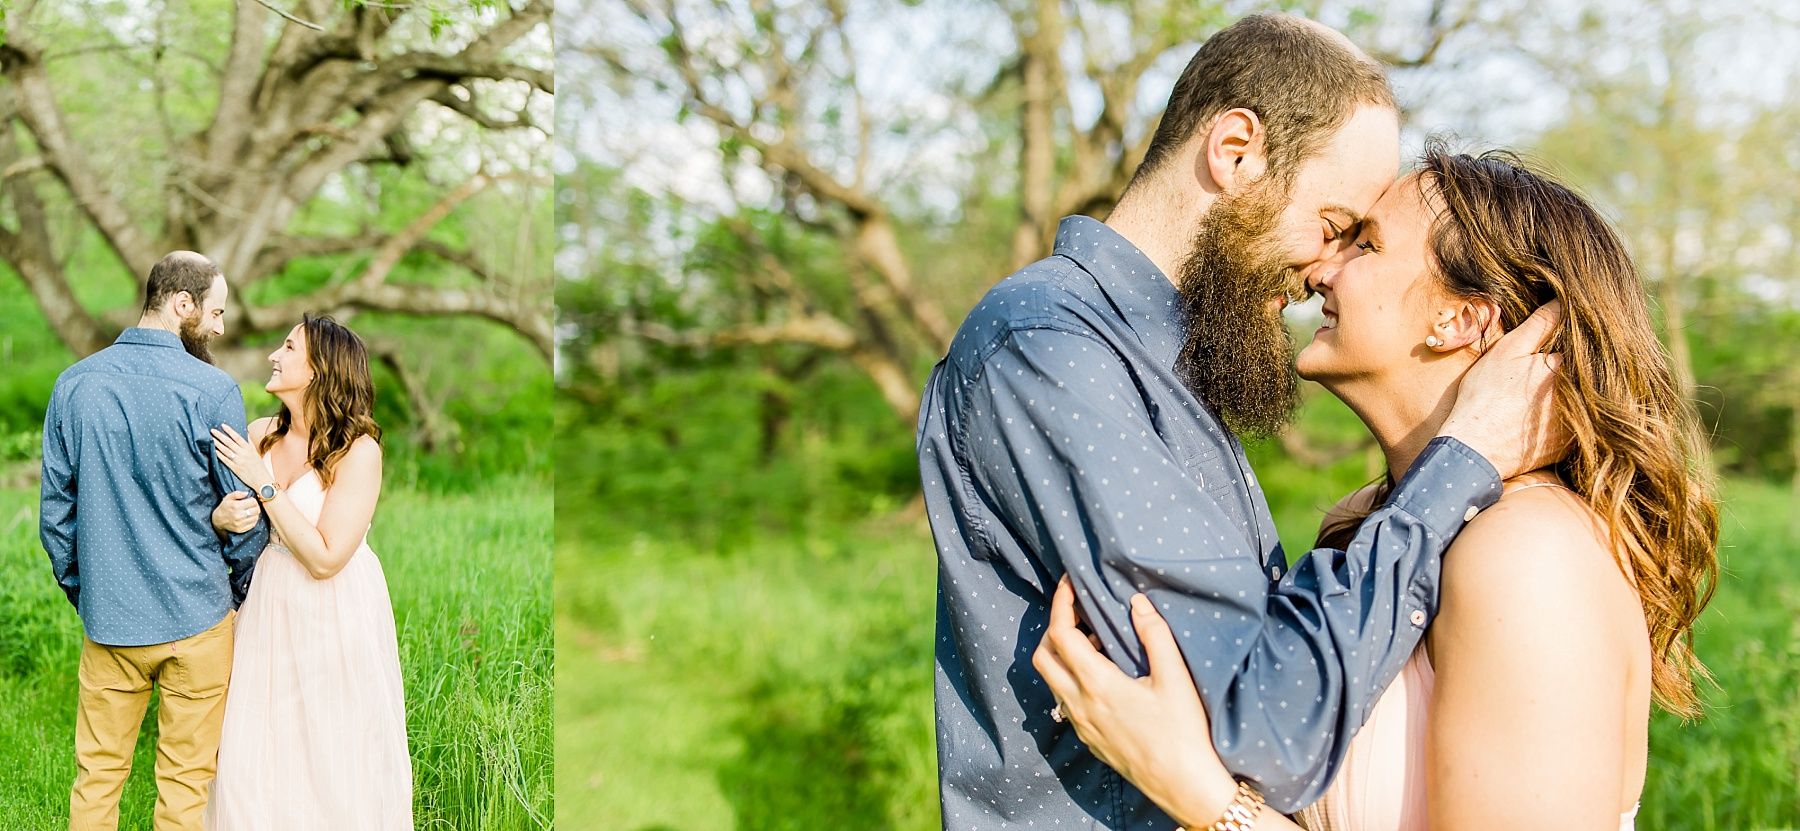 monticello indiana wedding engagement photography simple adventure weird_0025.jpg